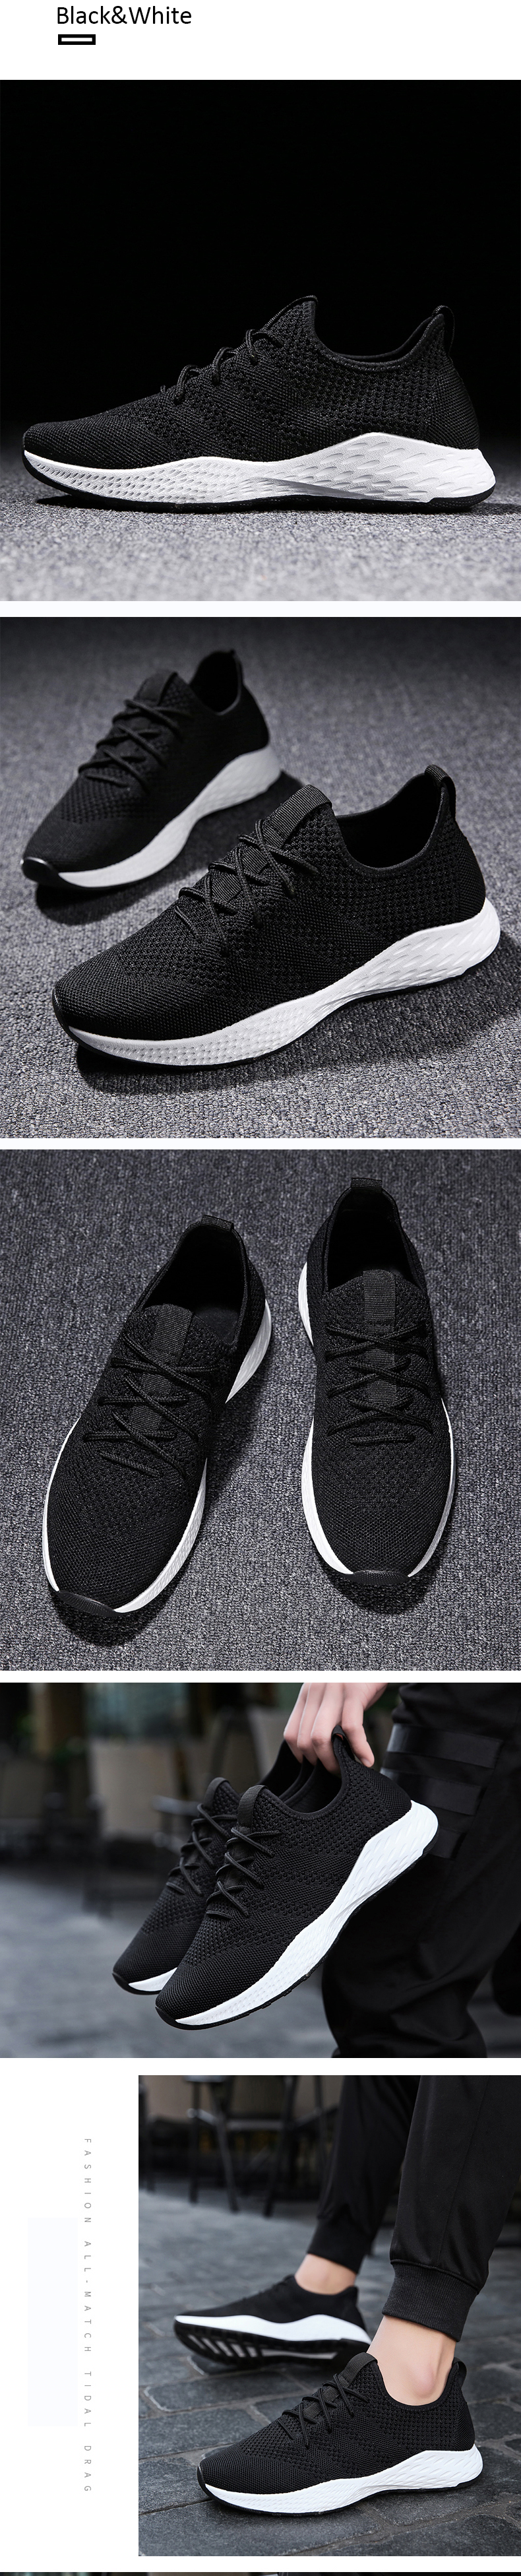 HTB1hYhlax rK1RkHFqDq6yJAFXa2 - Men Casual Shoes Men Sneakers Brand Men Shoes Male Mesh Flats Loafers Slip On Big Size Breathable Spring Autumn Winter Xammep